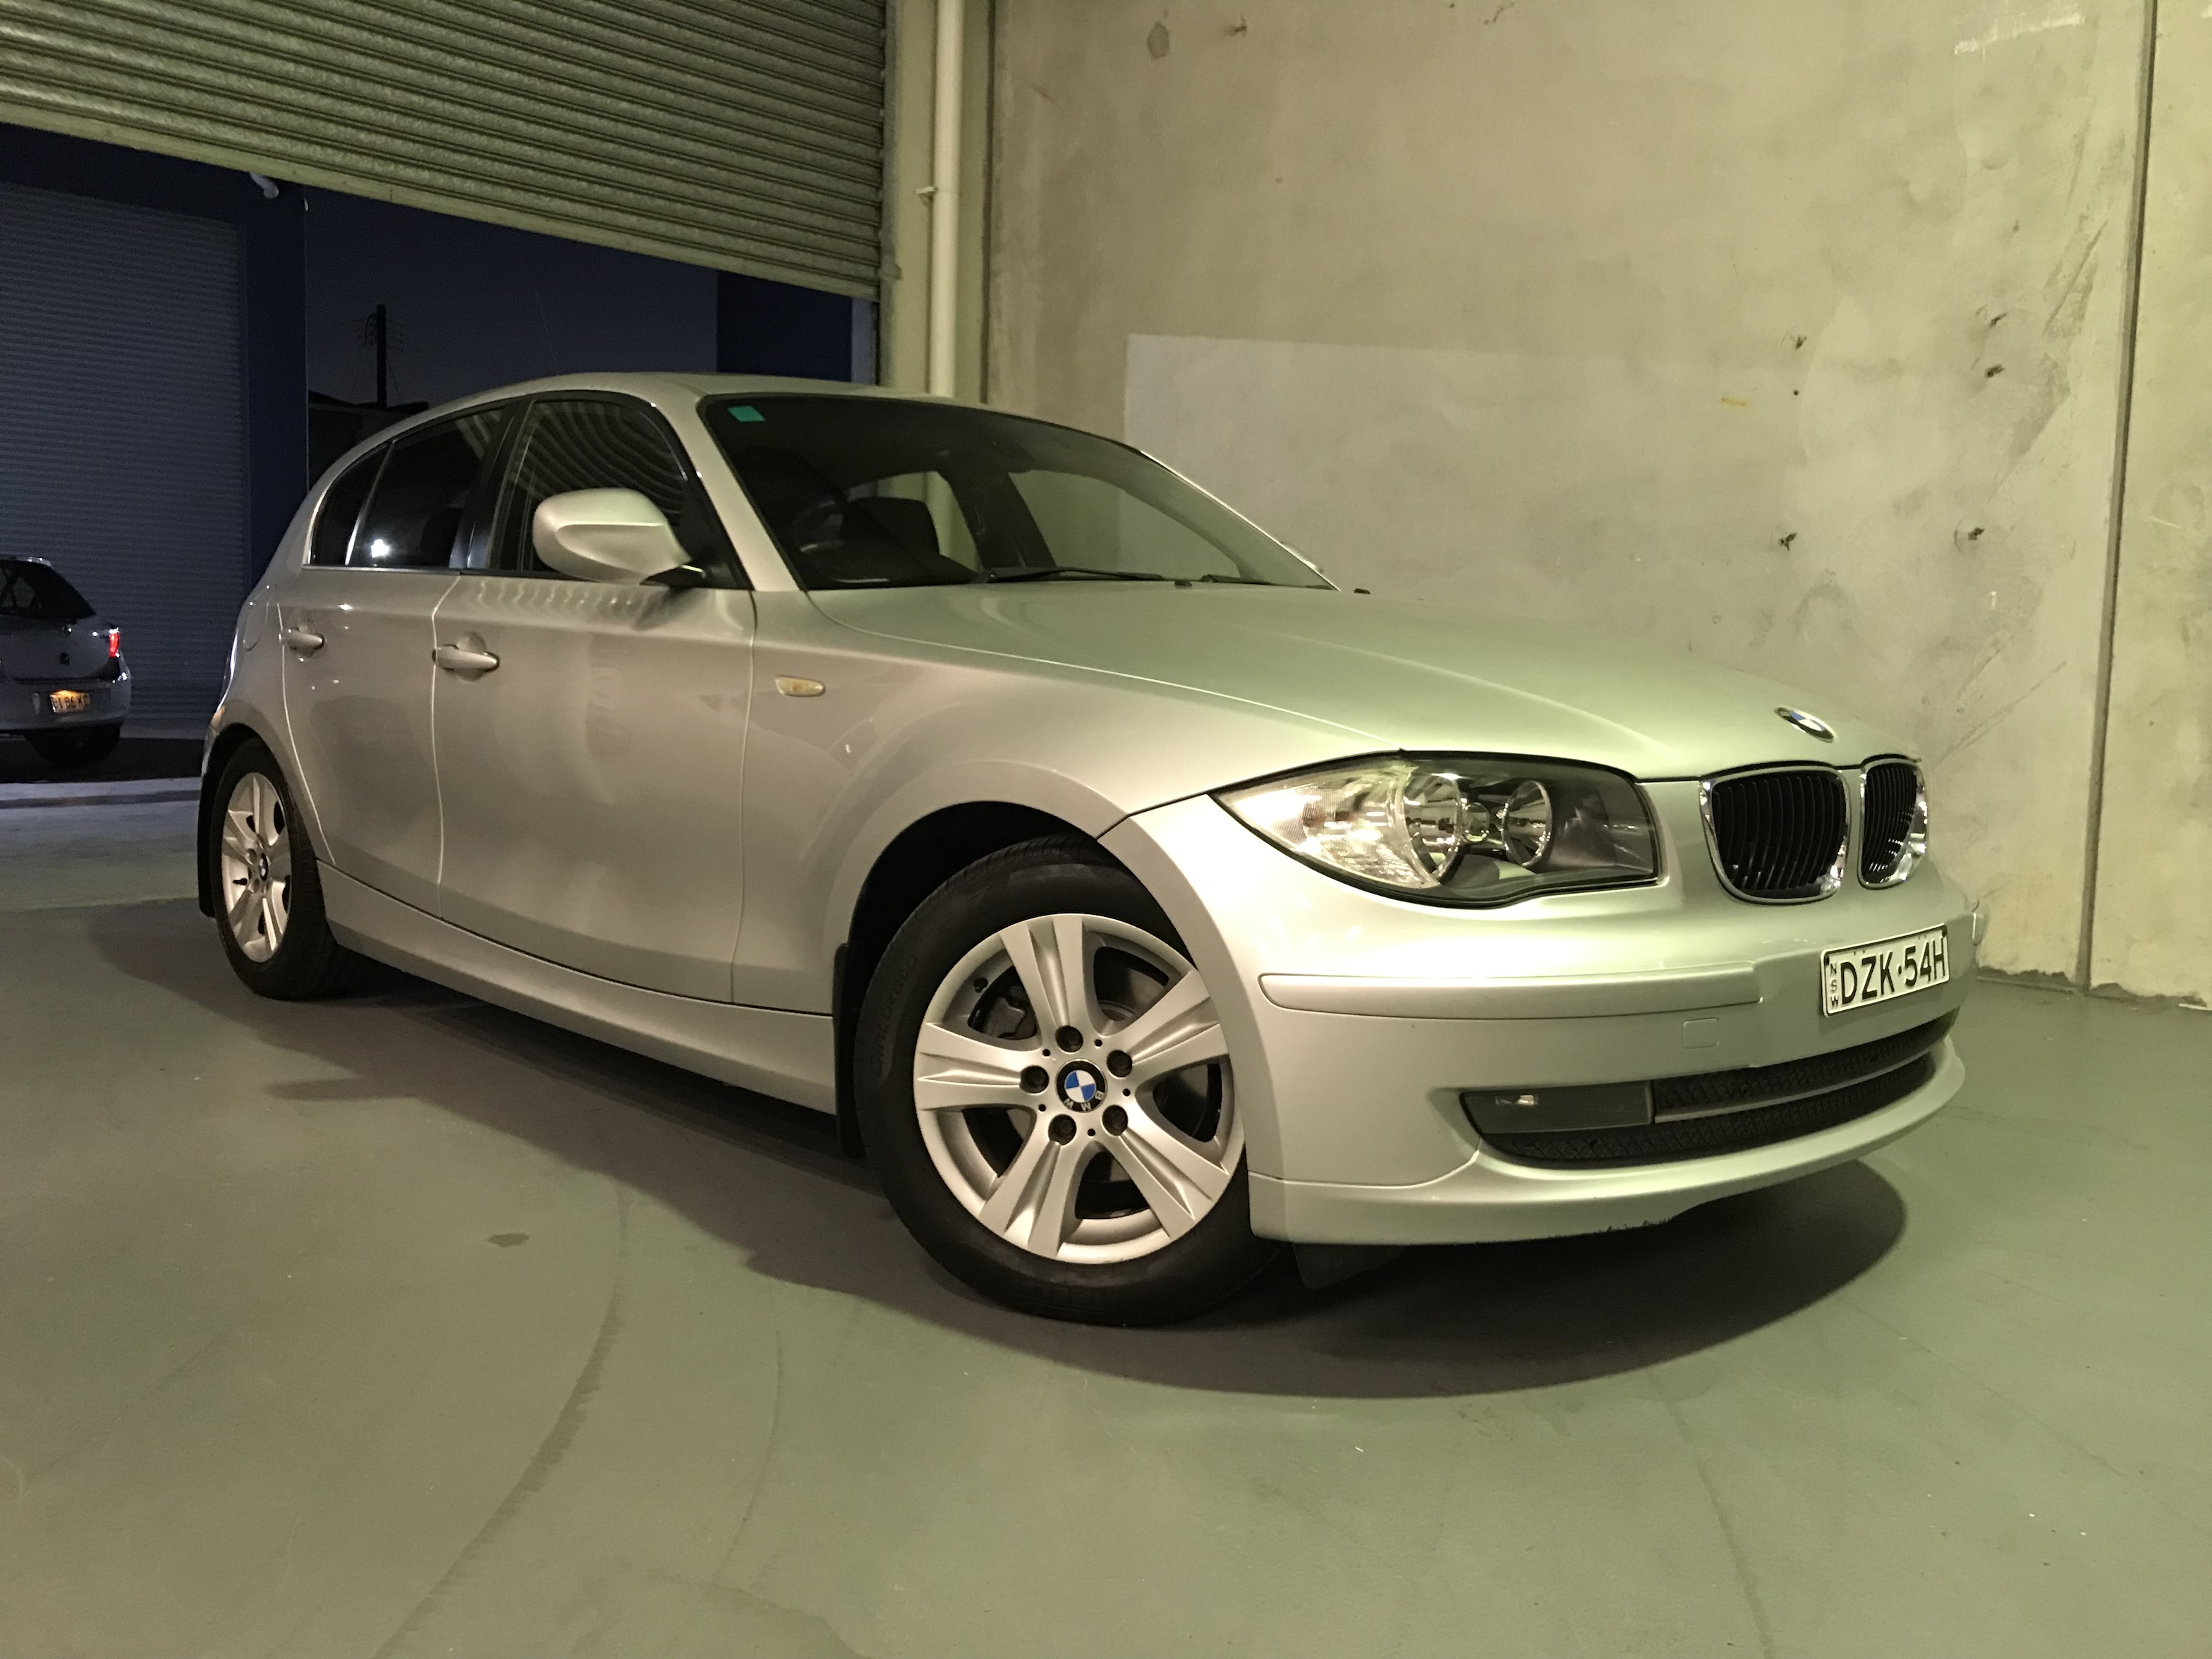 Picture of Peter's 2010 BMW 118i Hatch